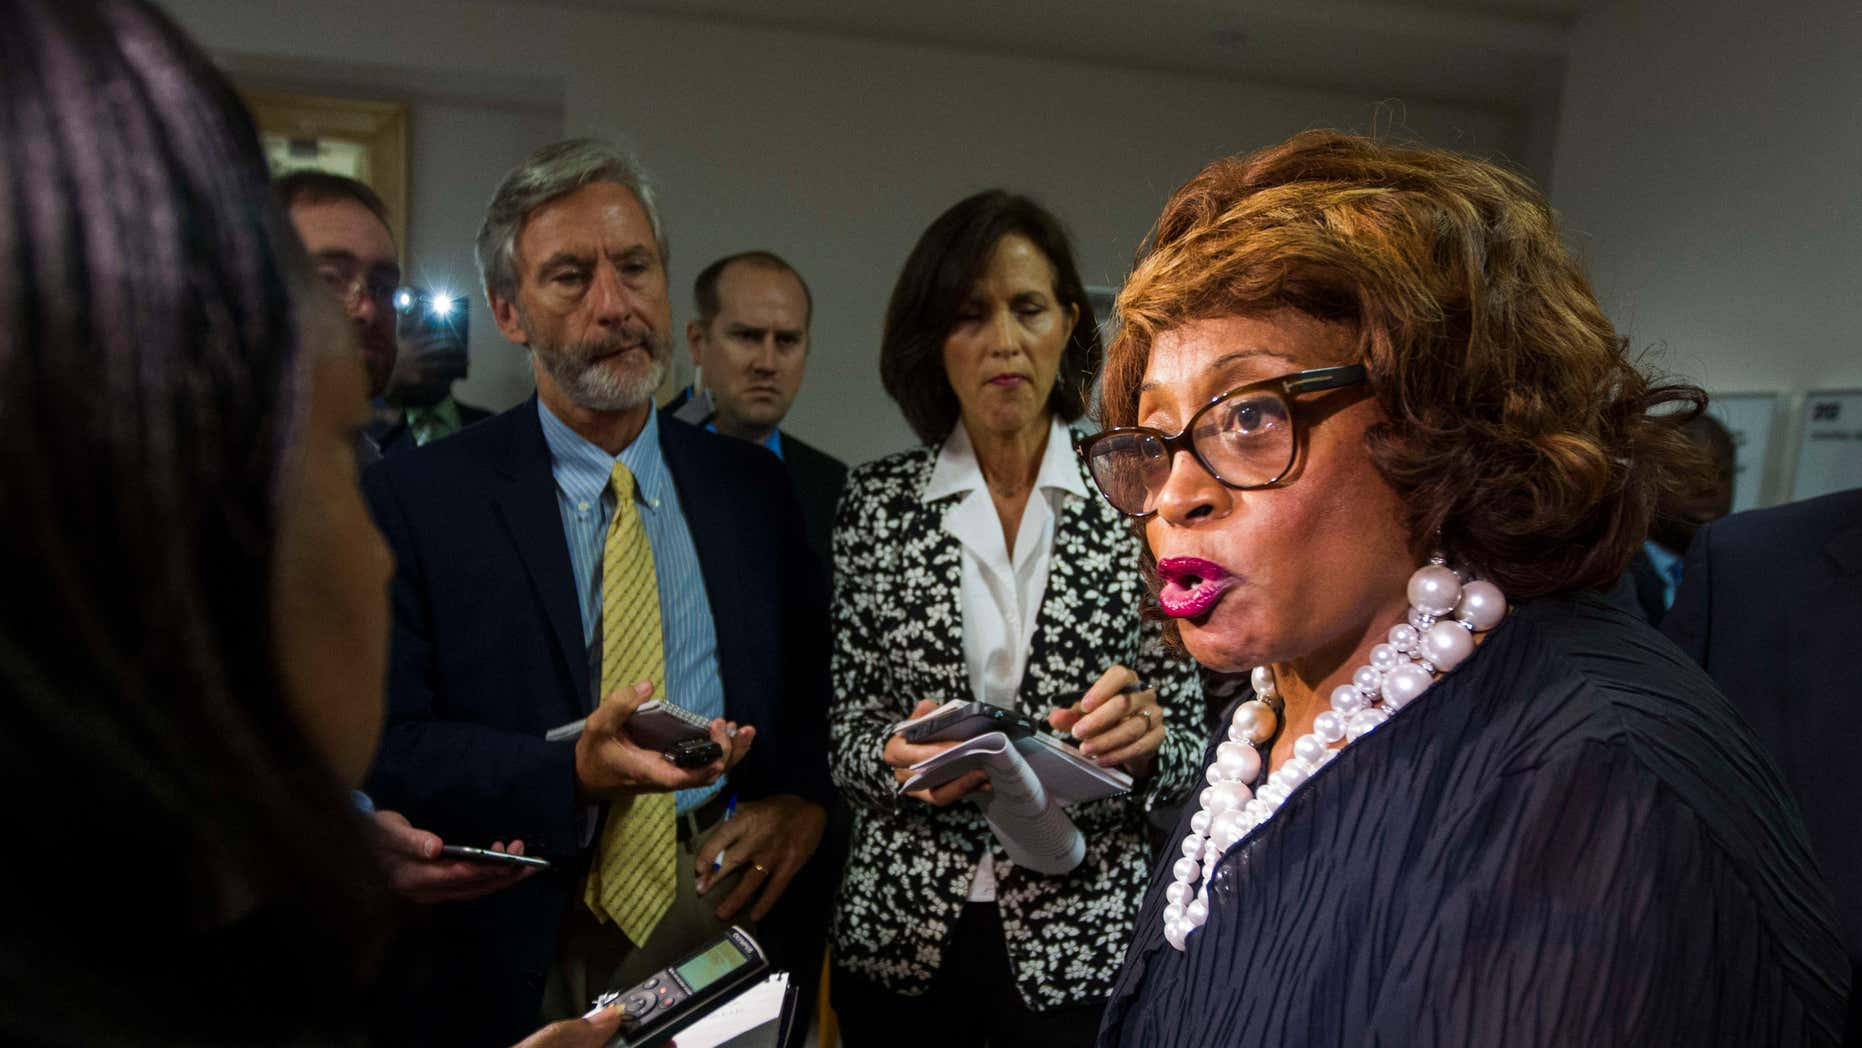 FILE - In this Aug. 13, 2015 file photo, Rep. Corrine Brown, D-Fla. talks with the press in Tallahassee, Fla.